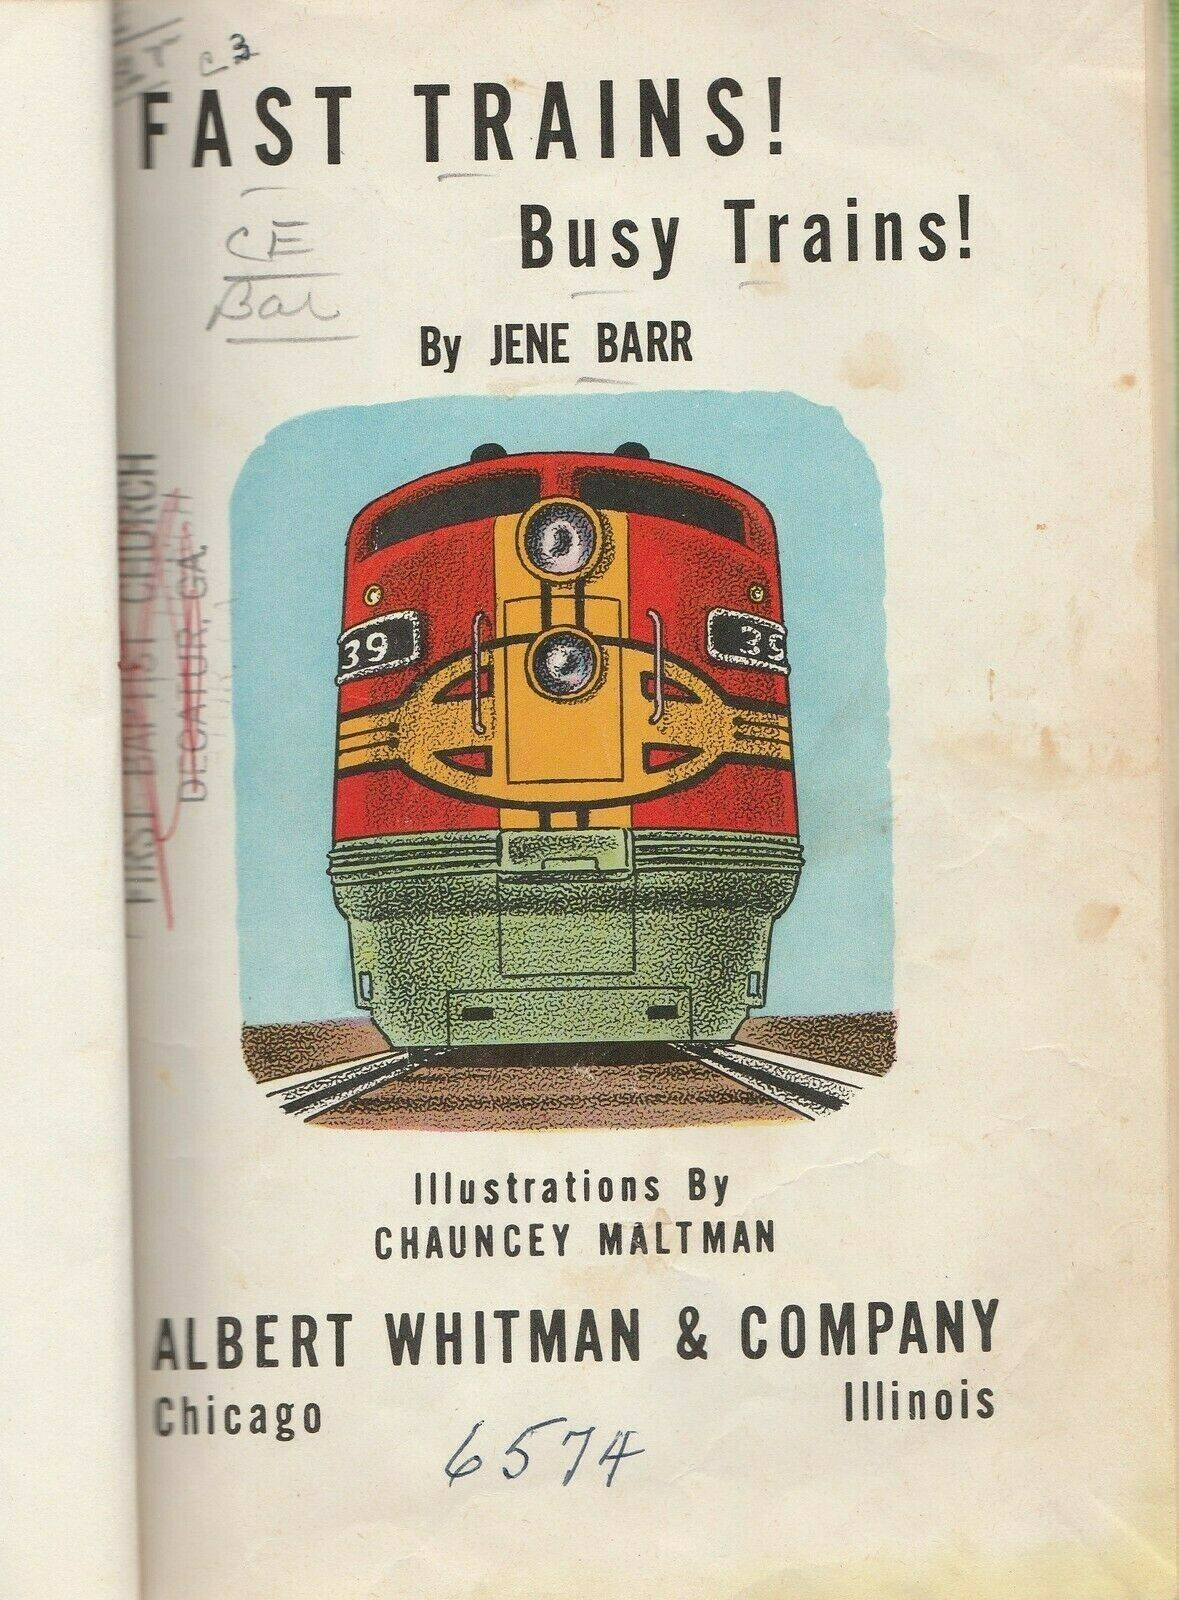 Fast Trains! Busy Trains by Jene Barr Chauncey Maltman 1959 Vintage Hardcover